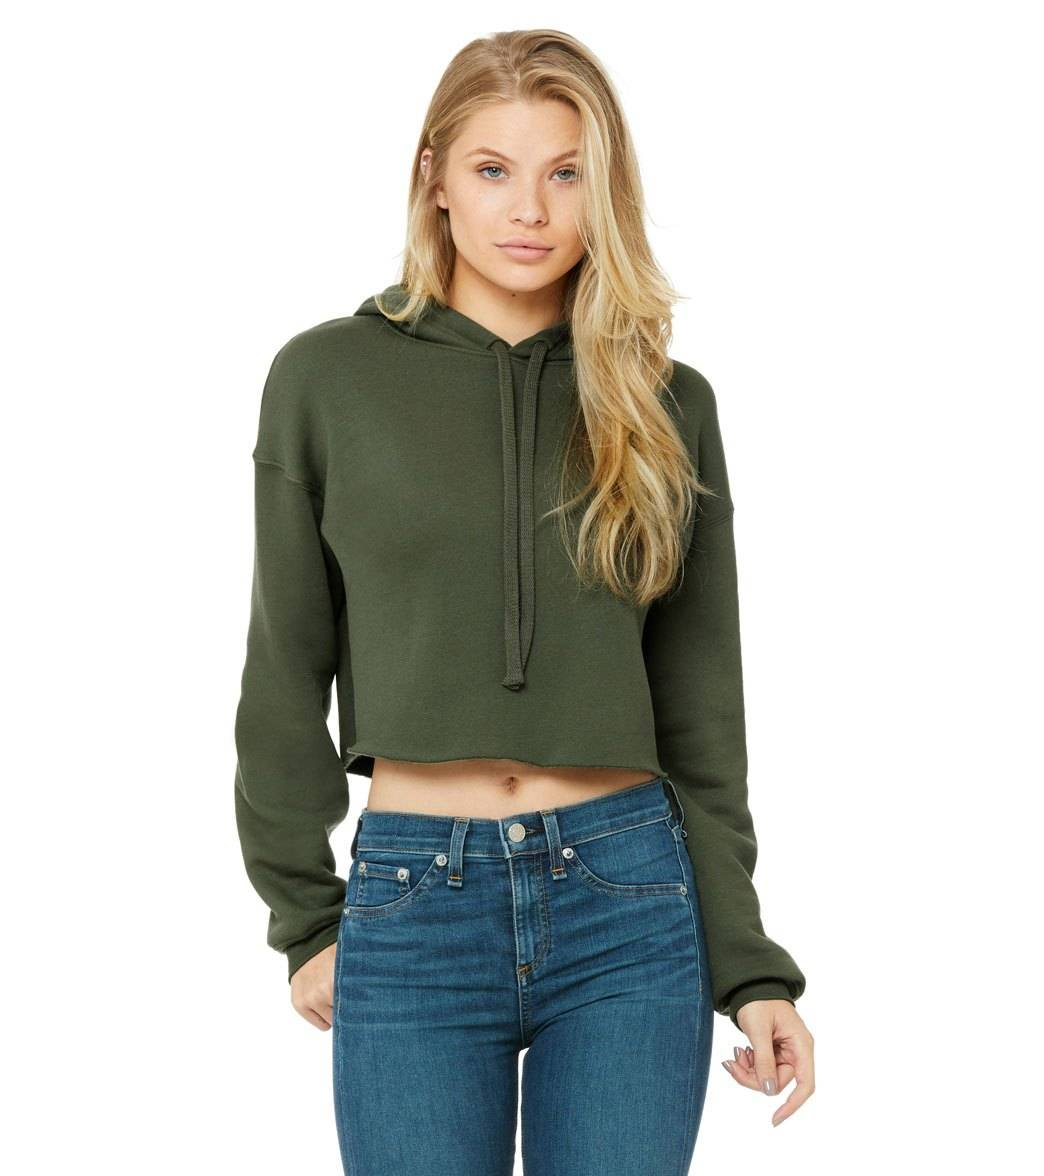 Bella + Canvas Women's Cropped Fleece Hoodie - Military Green - Large Cotton